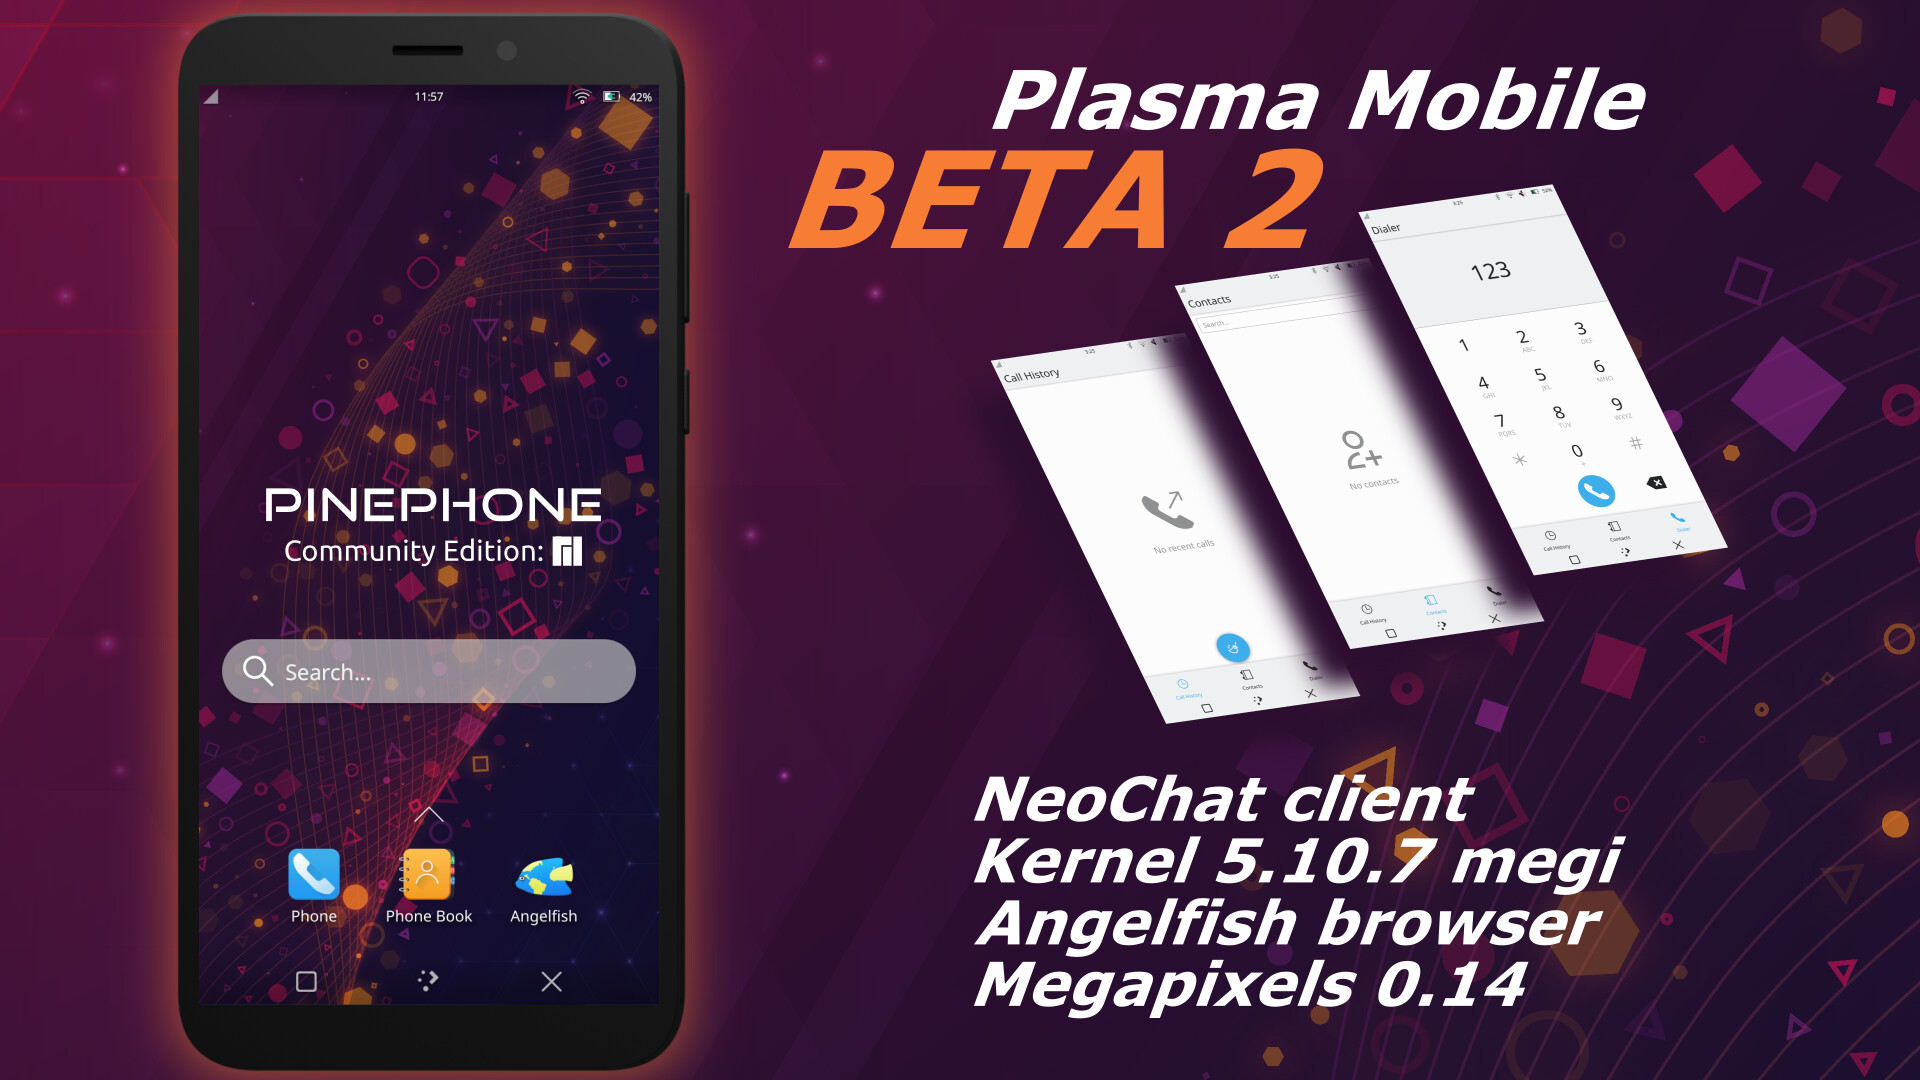 The second BETA version of Plasma-Mobile for PinePhone